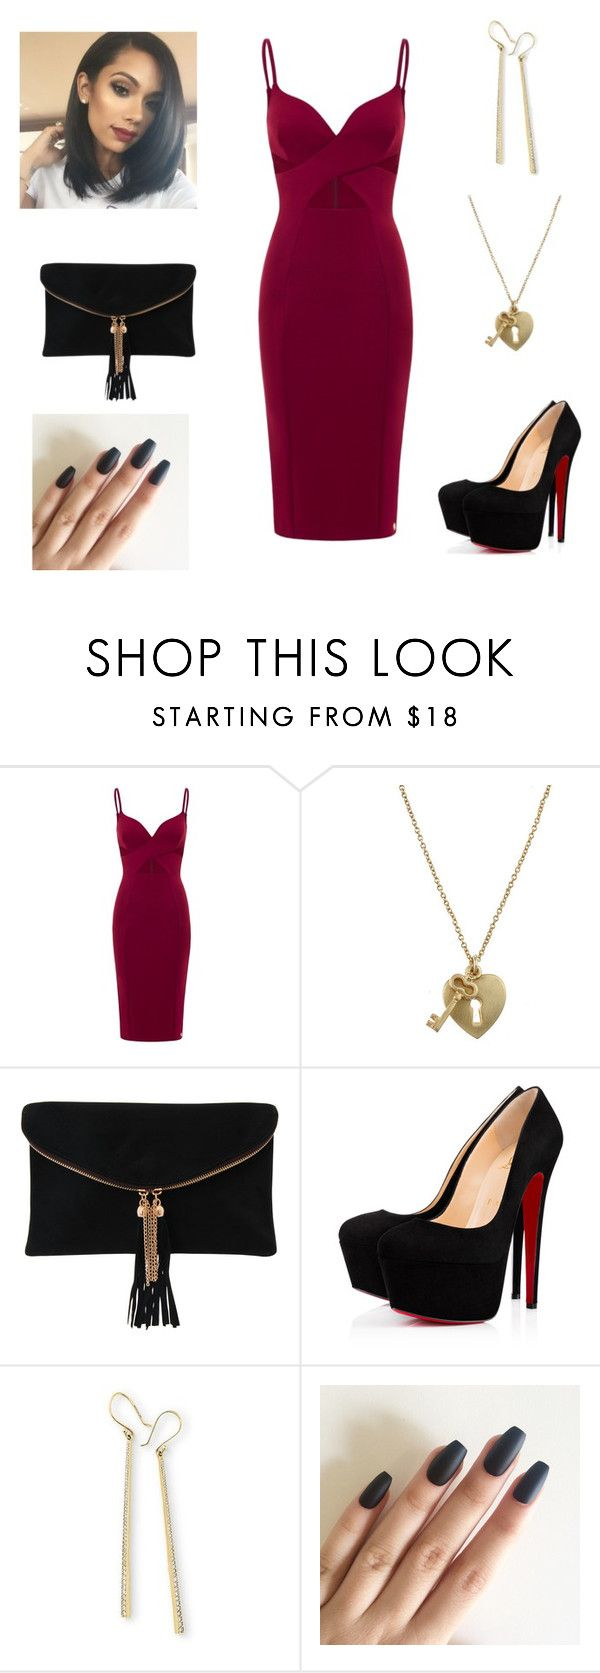 """Sexy Night Out 😉"" by annemarie-robinson on Polyvore featuring Aloura London, Zirconmania, Rare London and Ippolita"